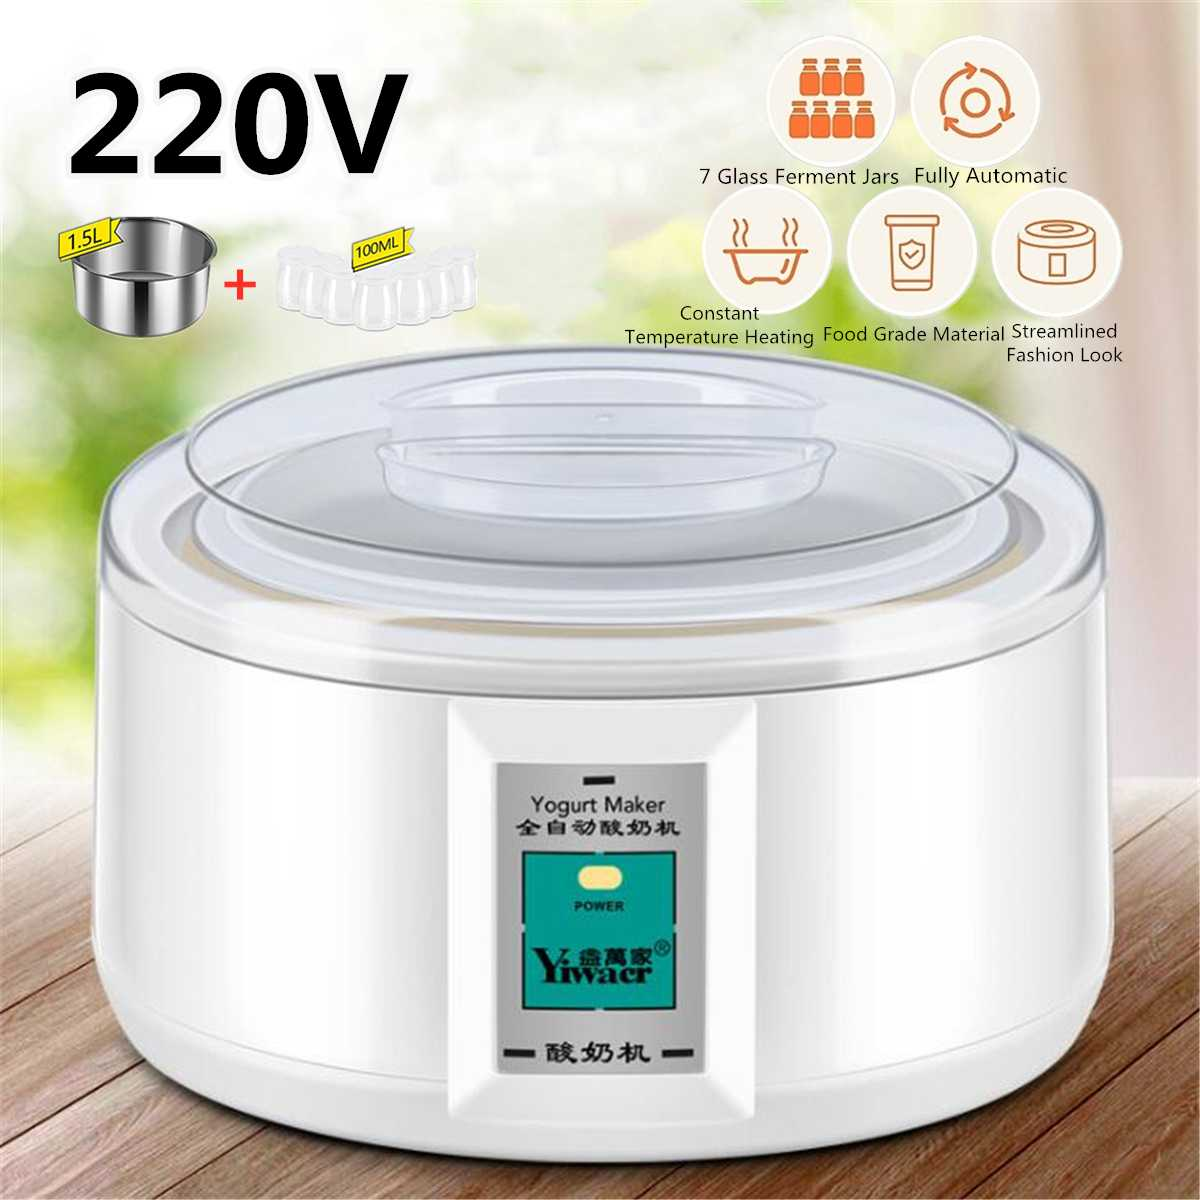 1.5L Electric Yogurt Maker